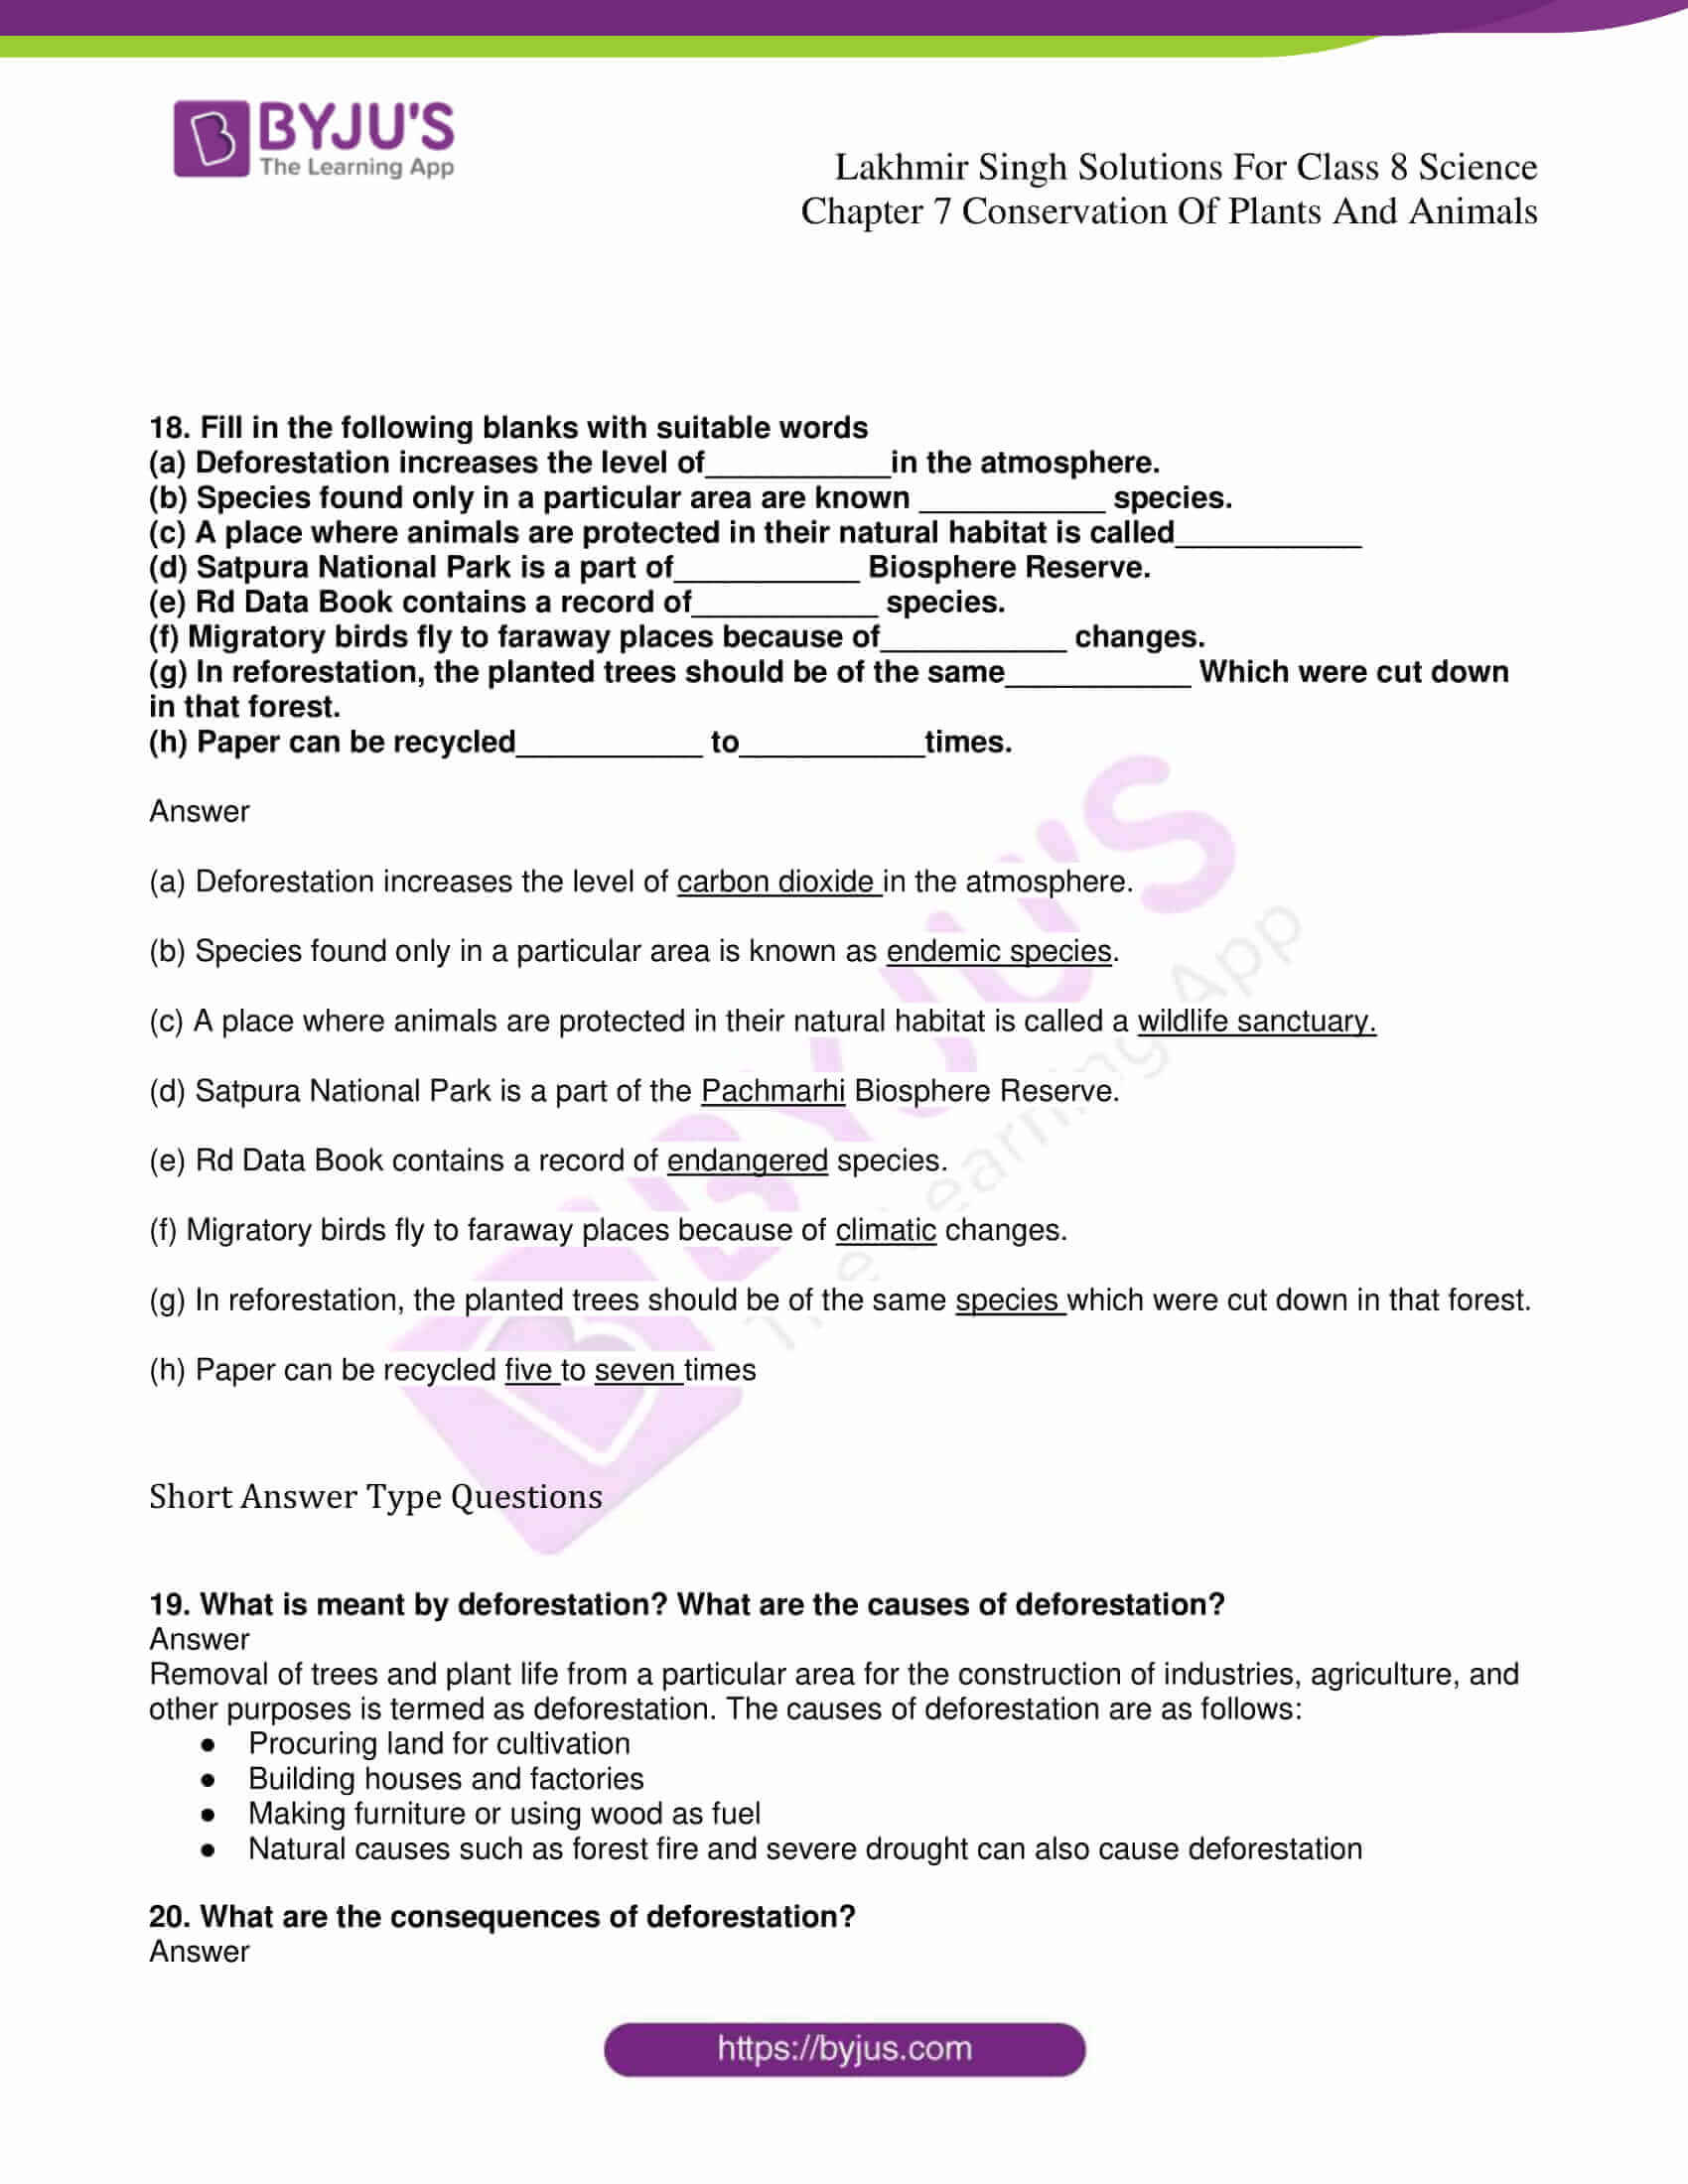 lakhmir singh solutions for class 8 science chapter 7 04